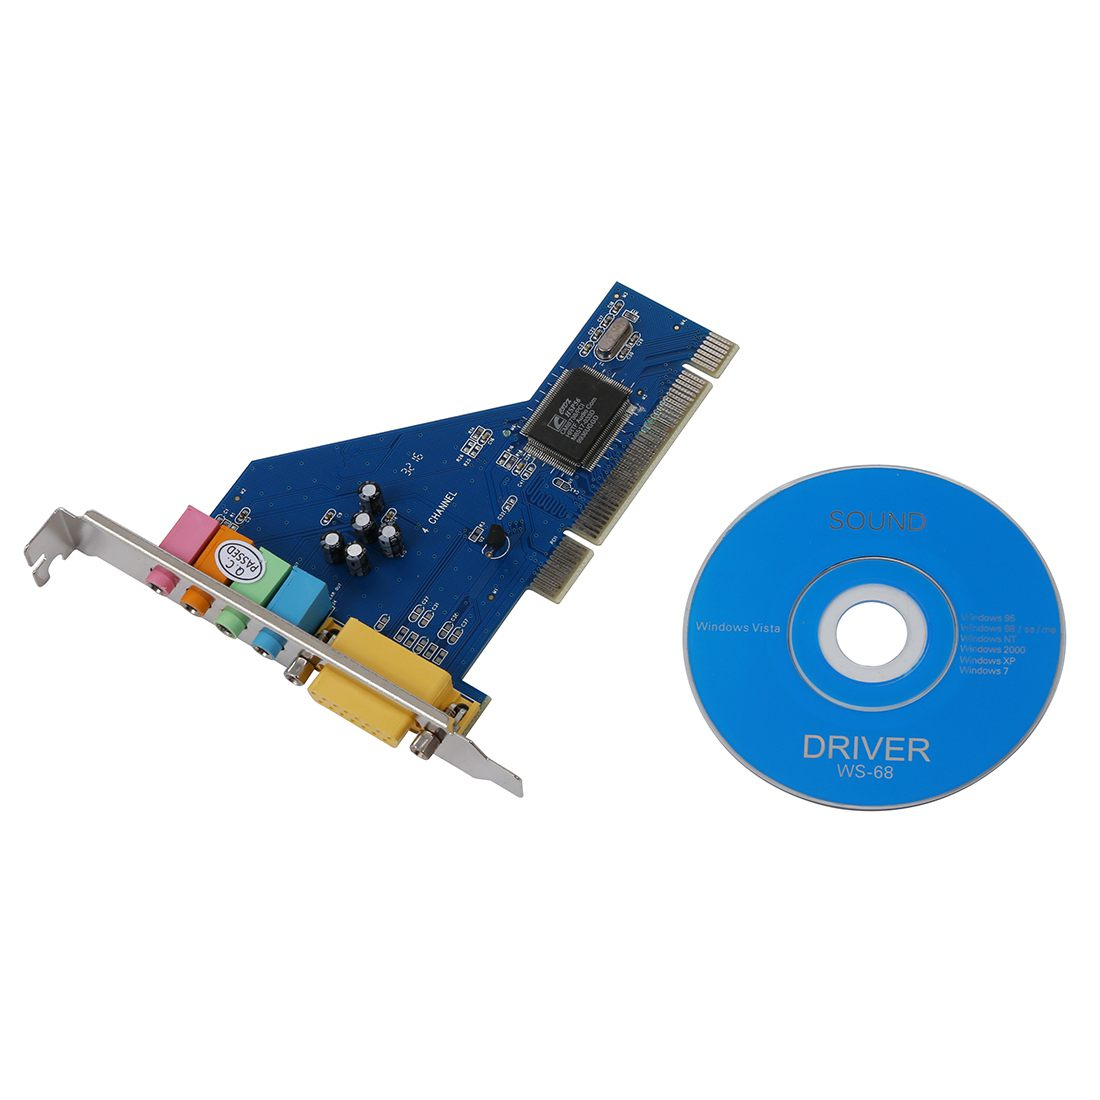 4 Channel C Media 8738 Chip 3D Audio Stereo Internal PCI Sound Card Win7 64  Bit-in Sound Cards from Computer & Office on Aliexpress.com | Alibaba Group